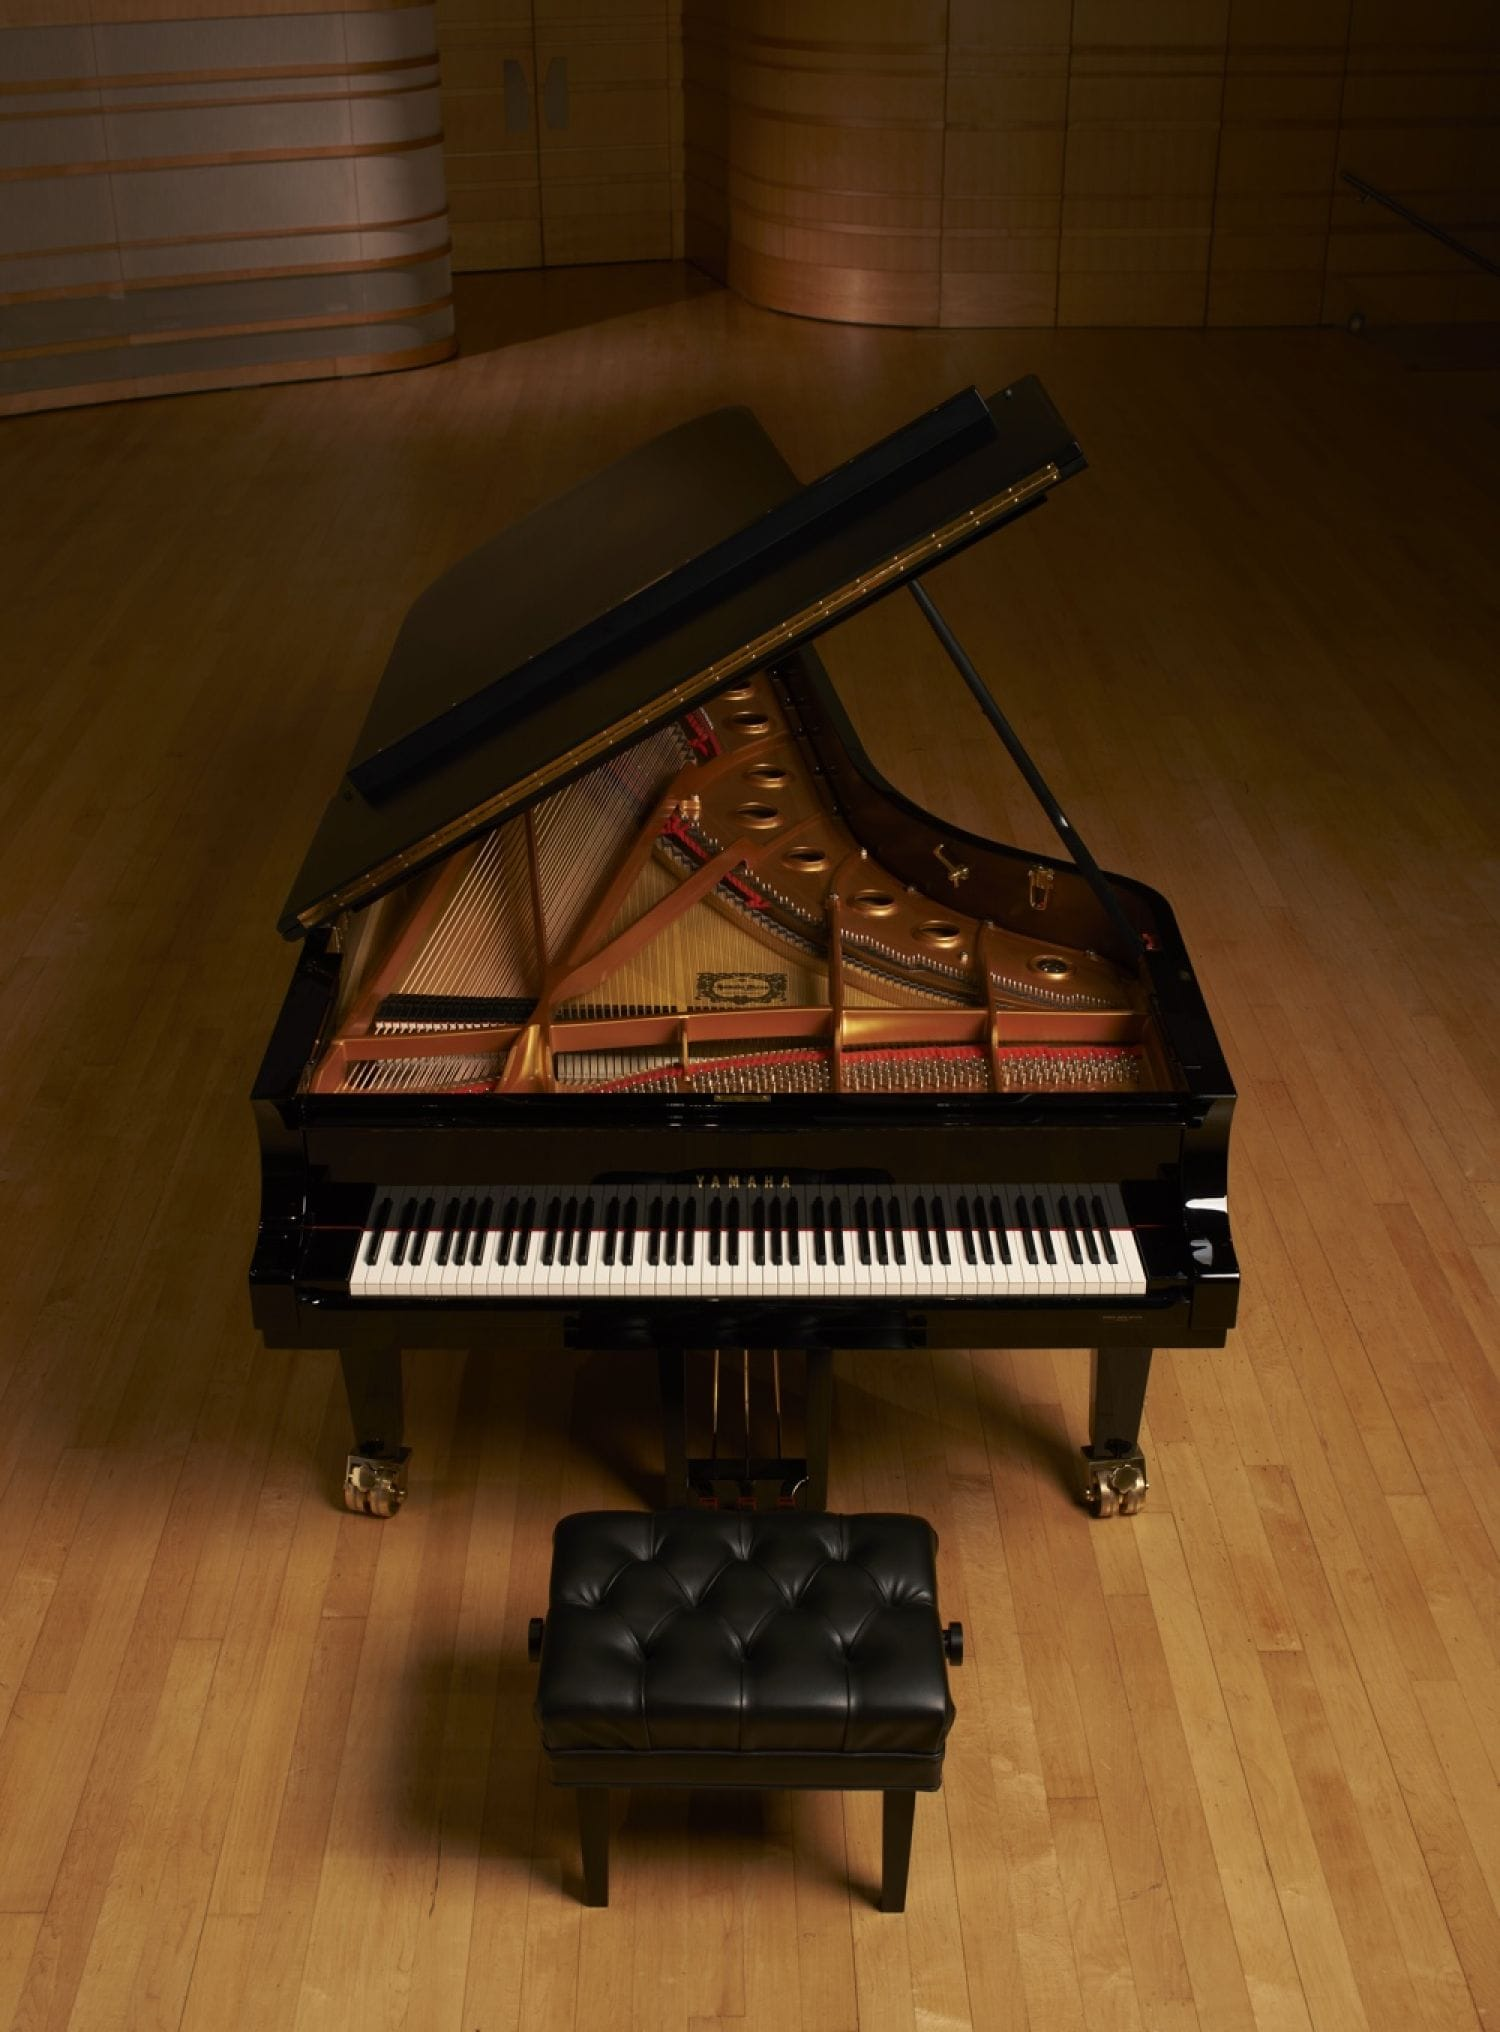 A view of a Yamaha concert grand with the lid open and view of keys and inner workings on an otherwise empty stage.